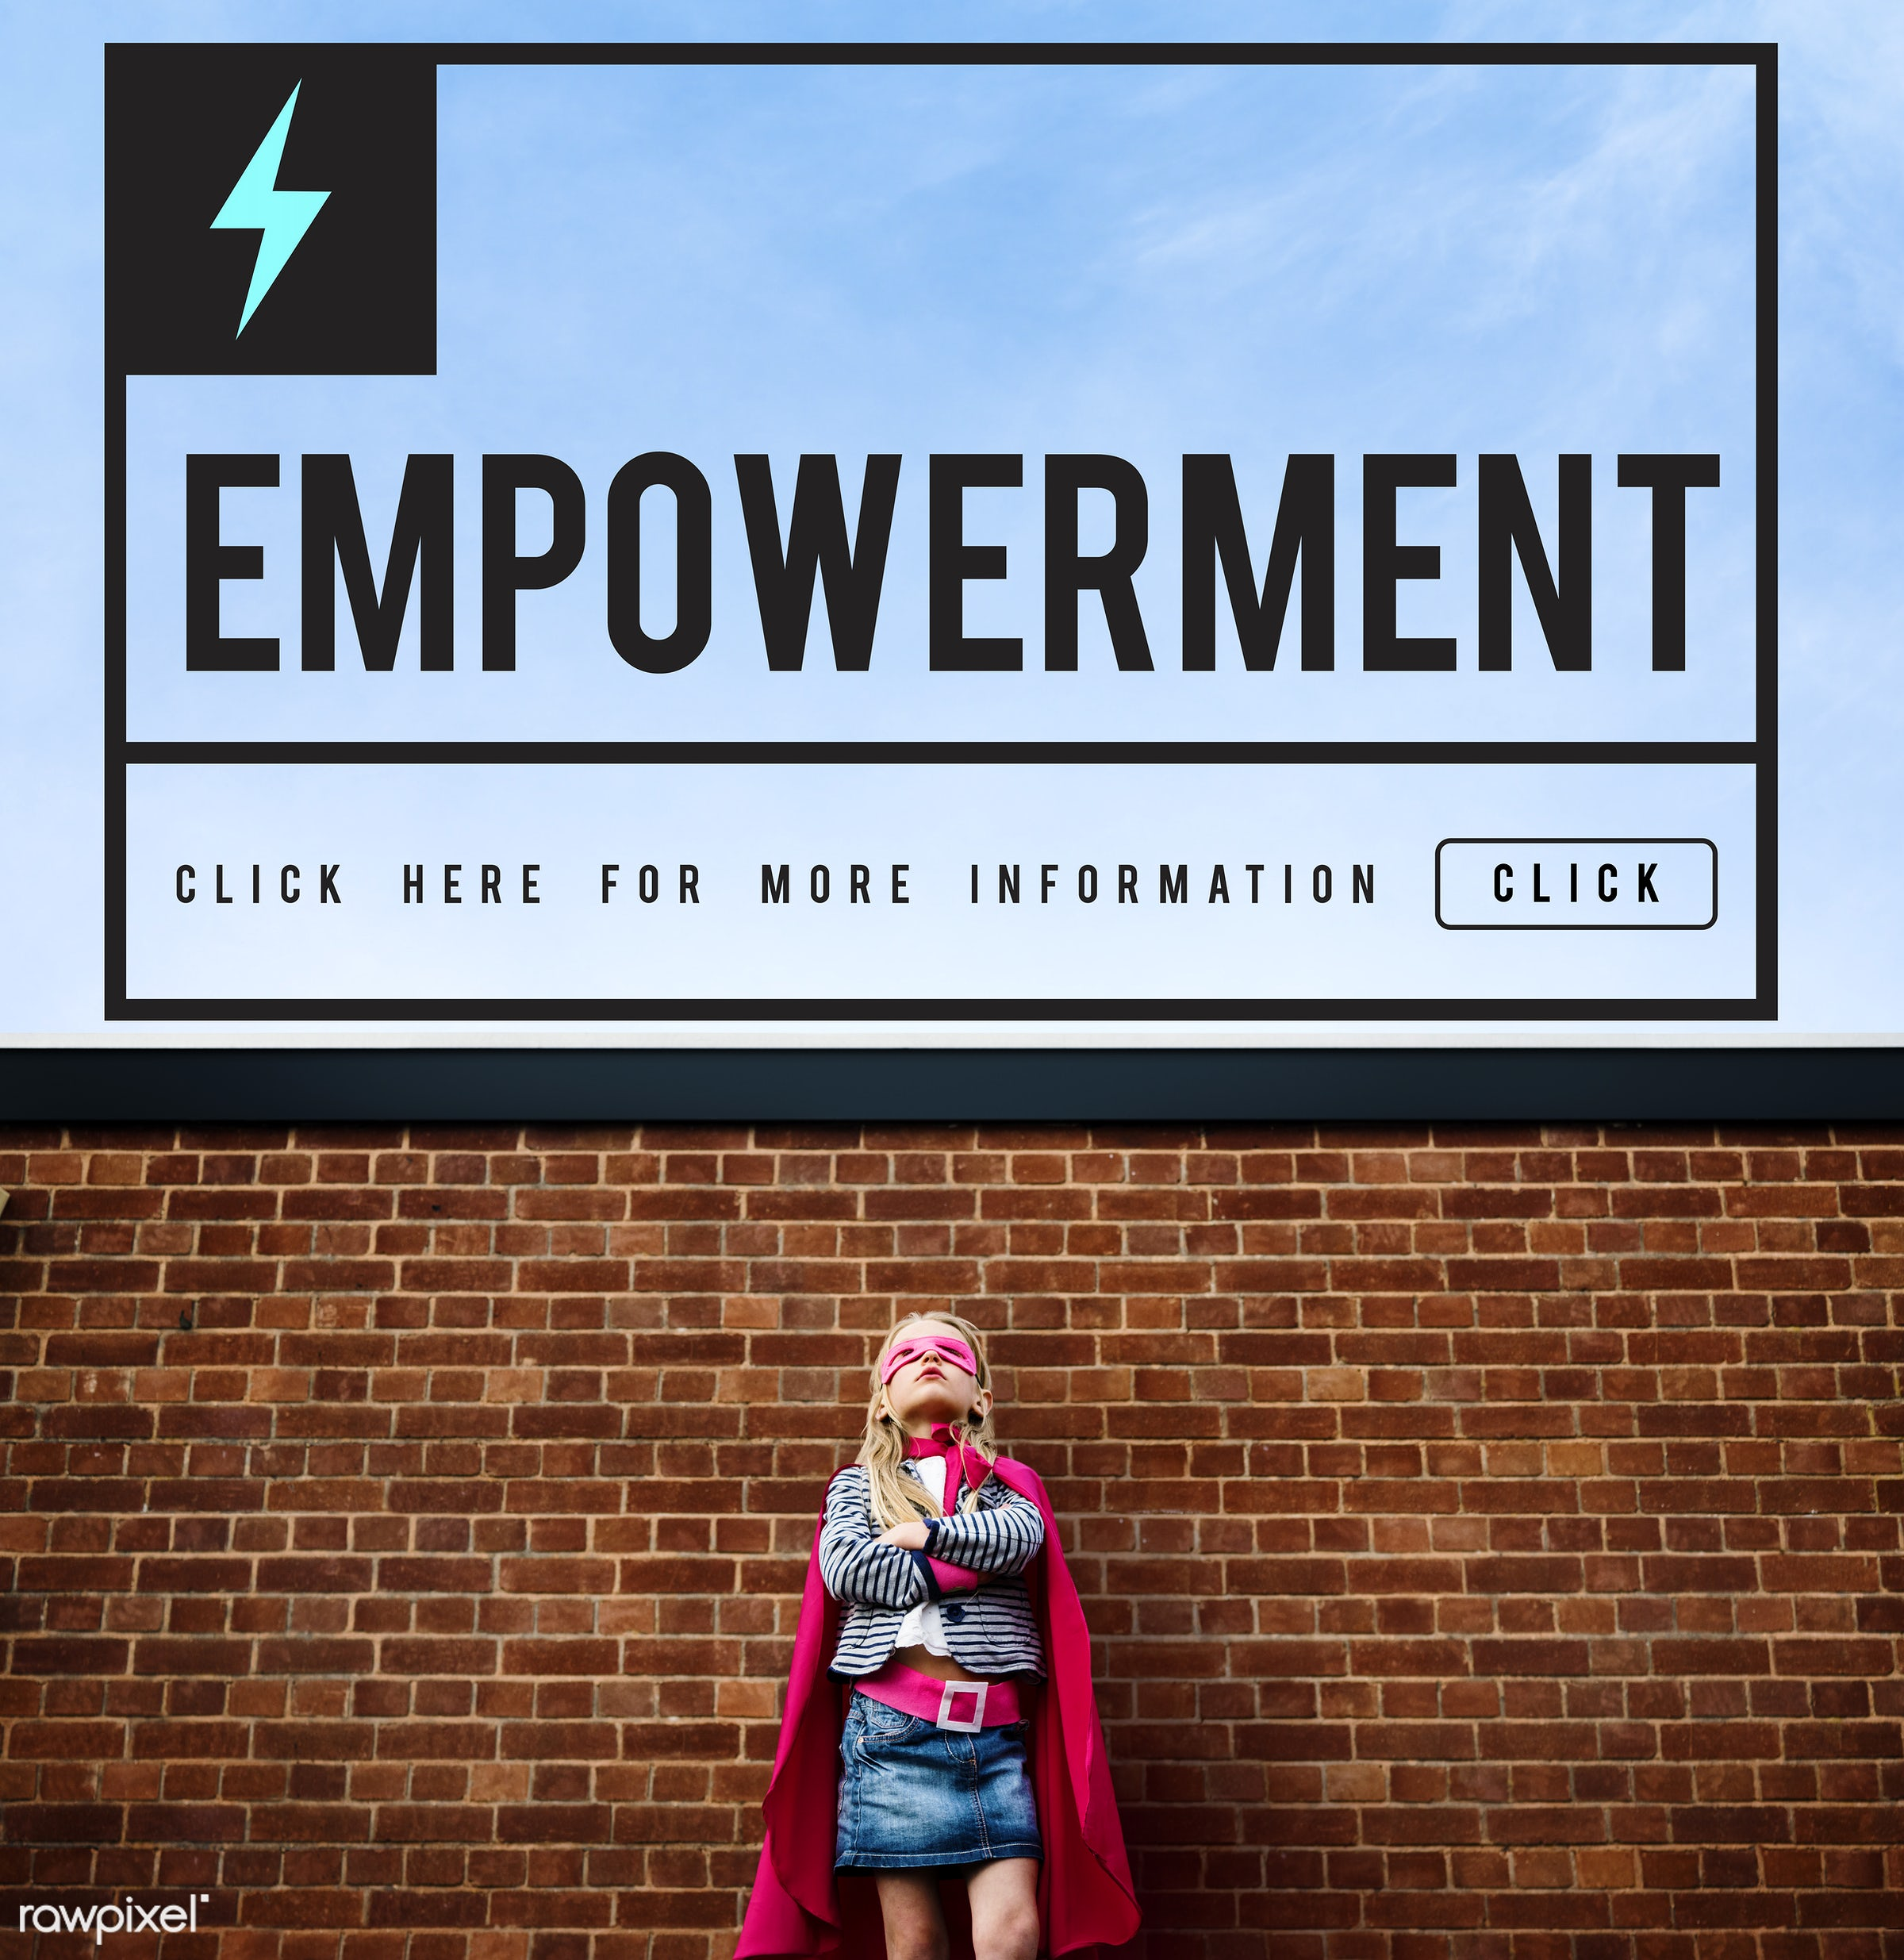 active, be, best, brave, change, child, childhood, costume, difference, dream, dressed up, empower, empowerment, girl,...